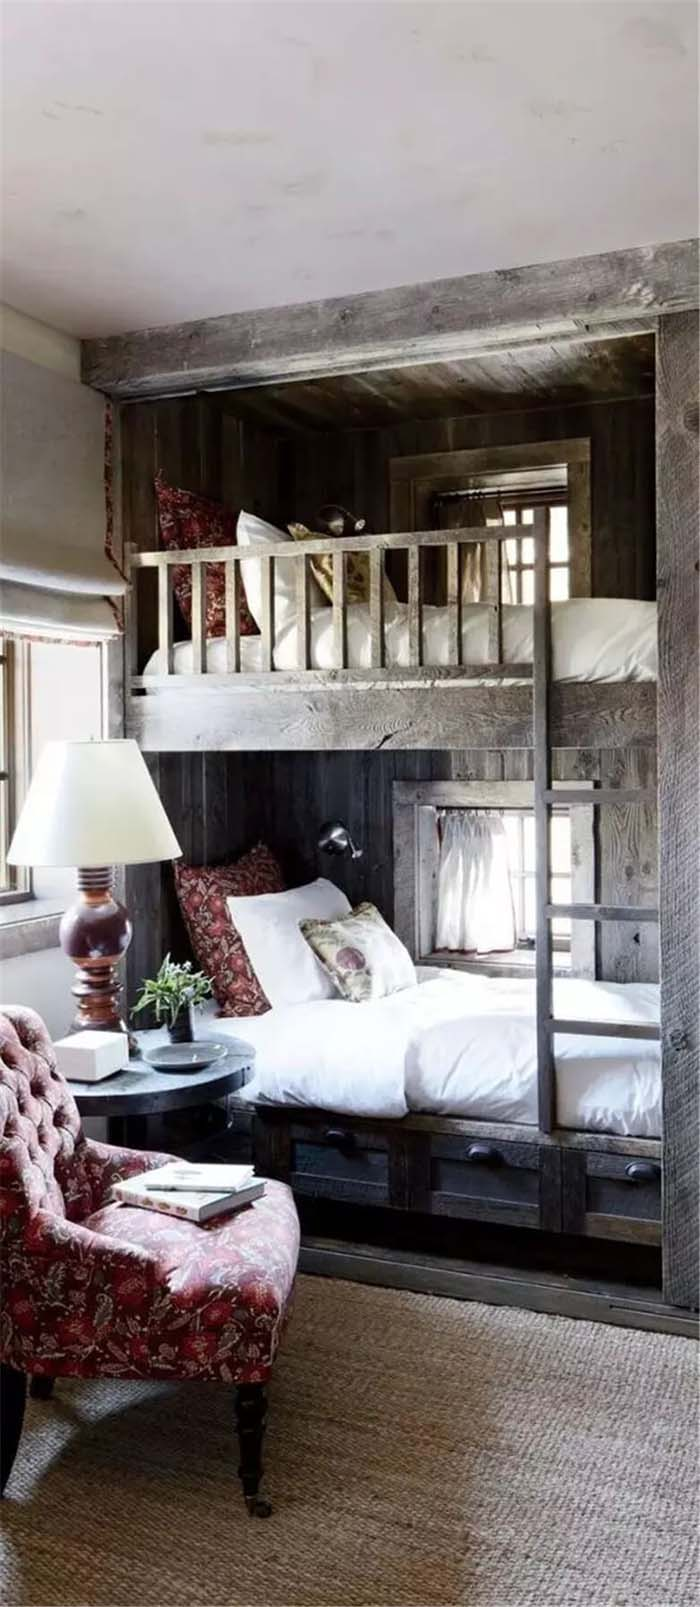 Bunk Beds with a Chair for Reading #bedroom #small #design #decorhomeideas